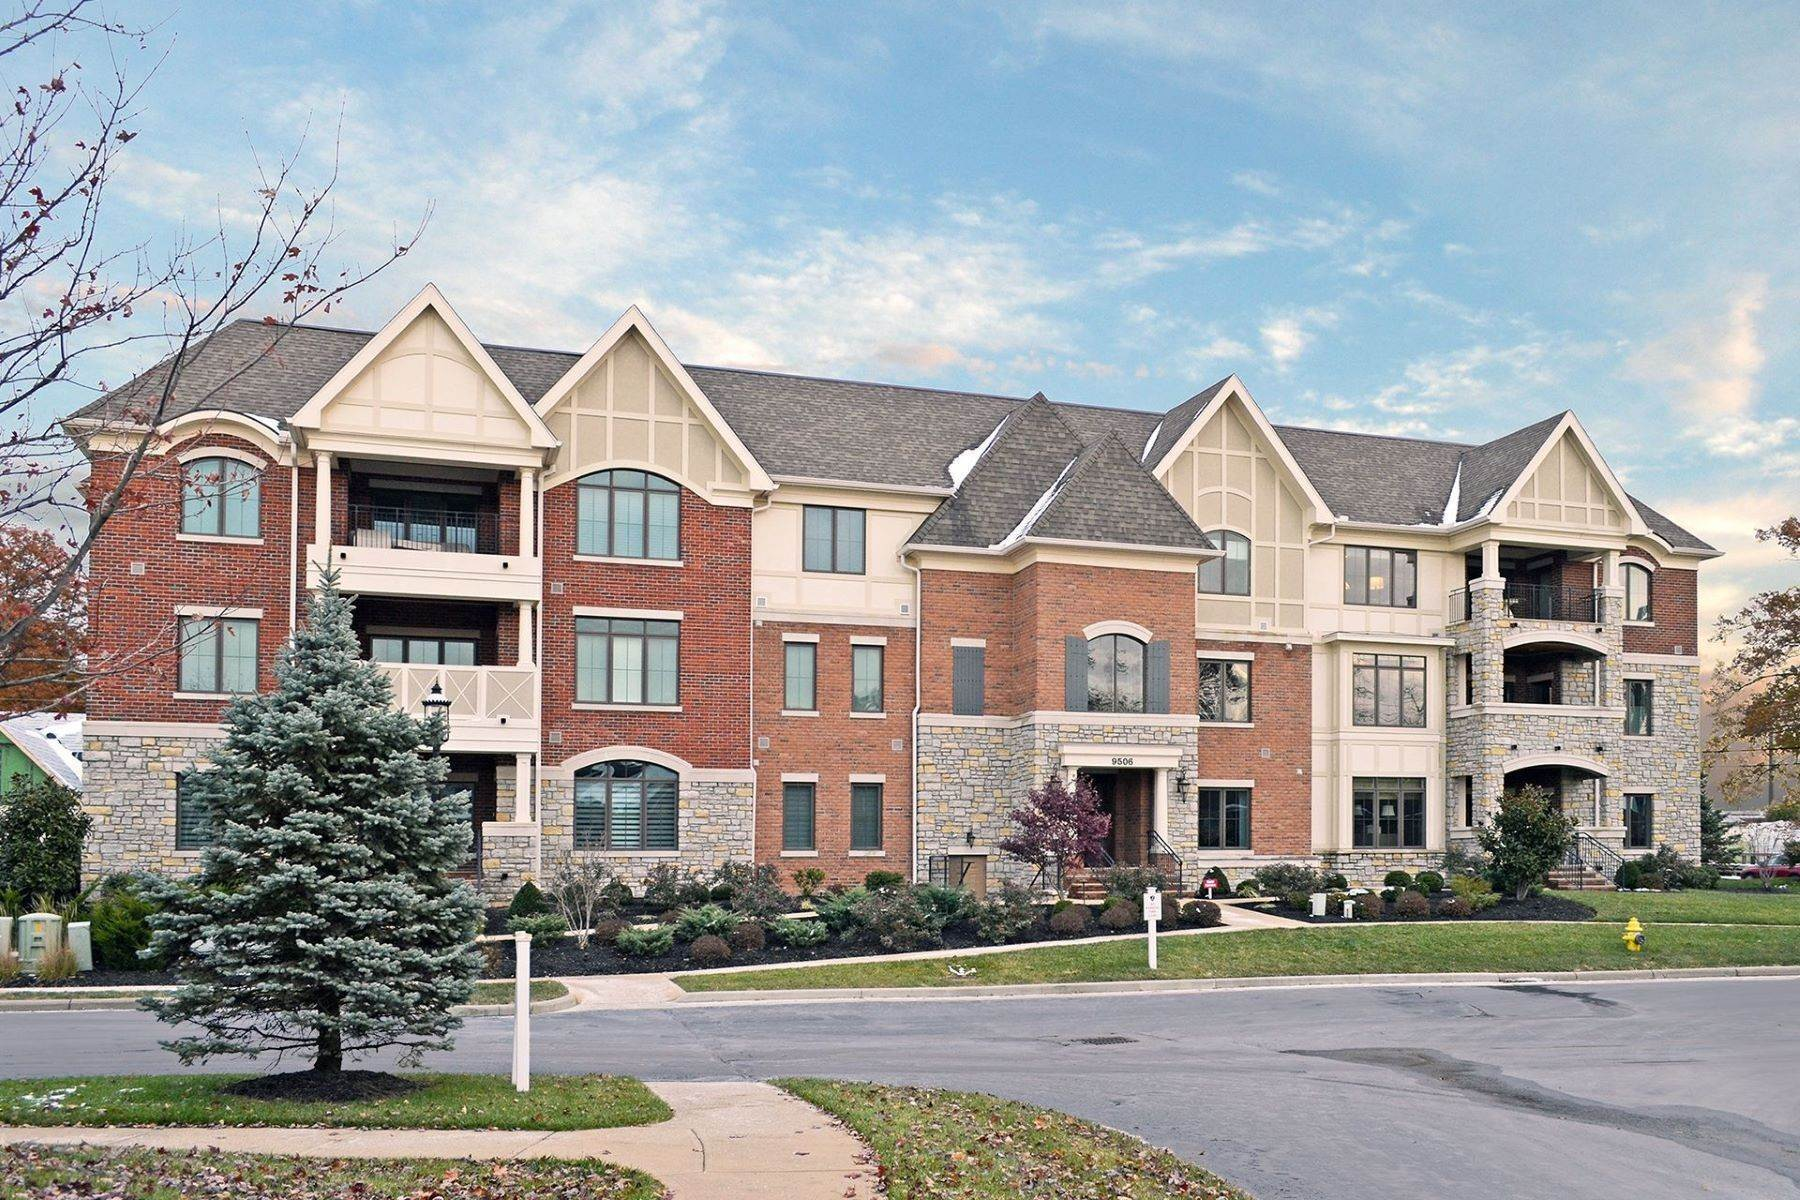 Condominiums for Sale at 9506 Park Manor Boulevard, Blue Ash, OH 45242 9506 Park Manor Boulevard, #304 Blue Ash, Ohio 45242 United States